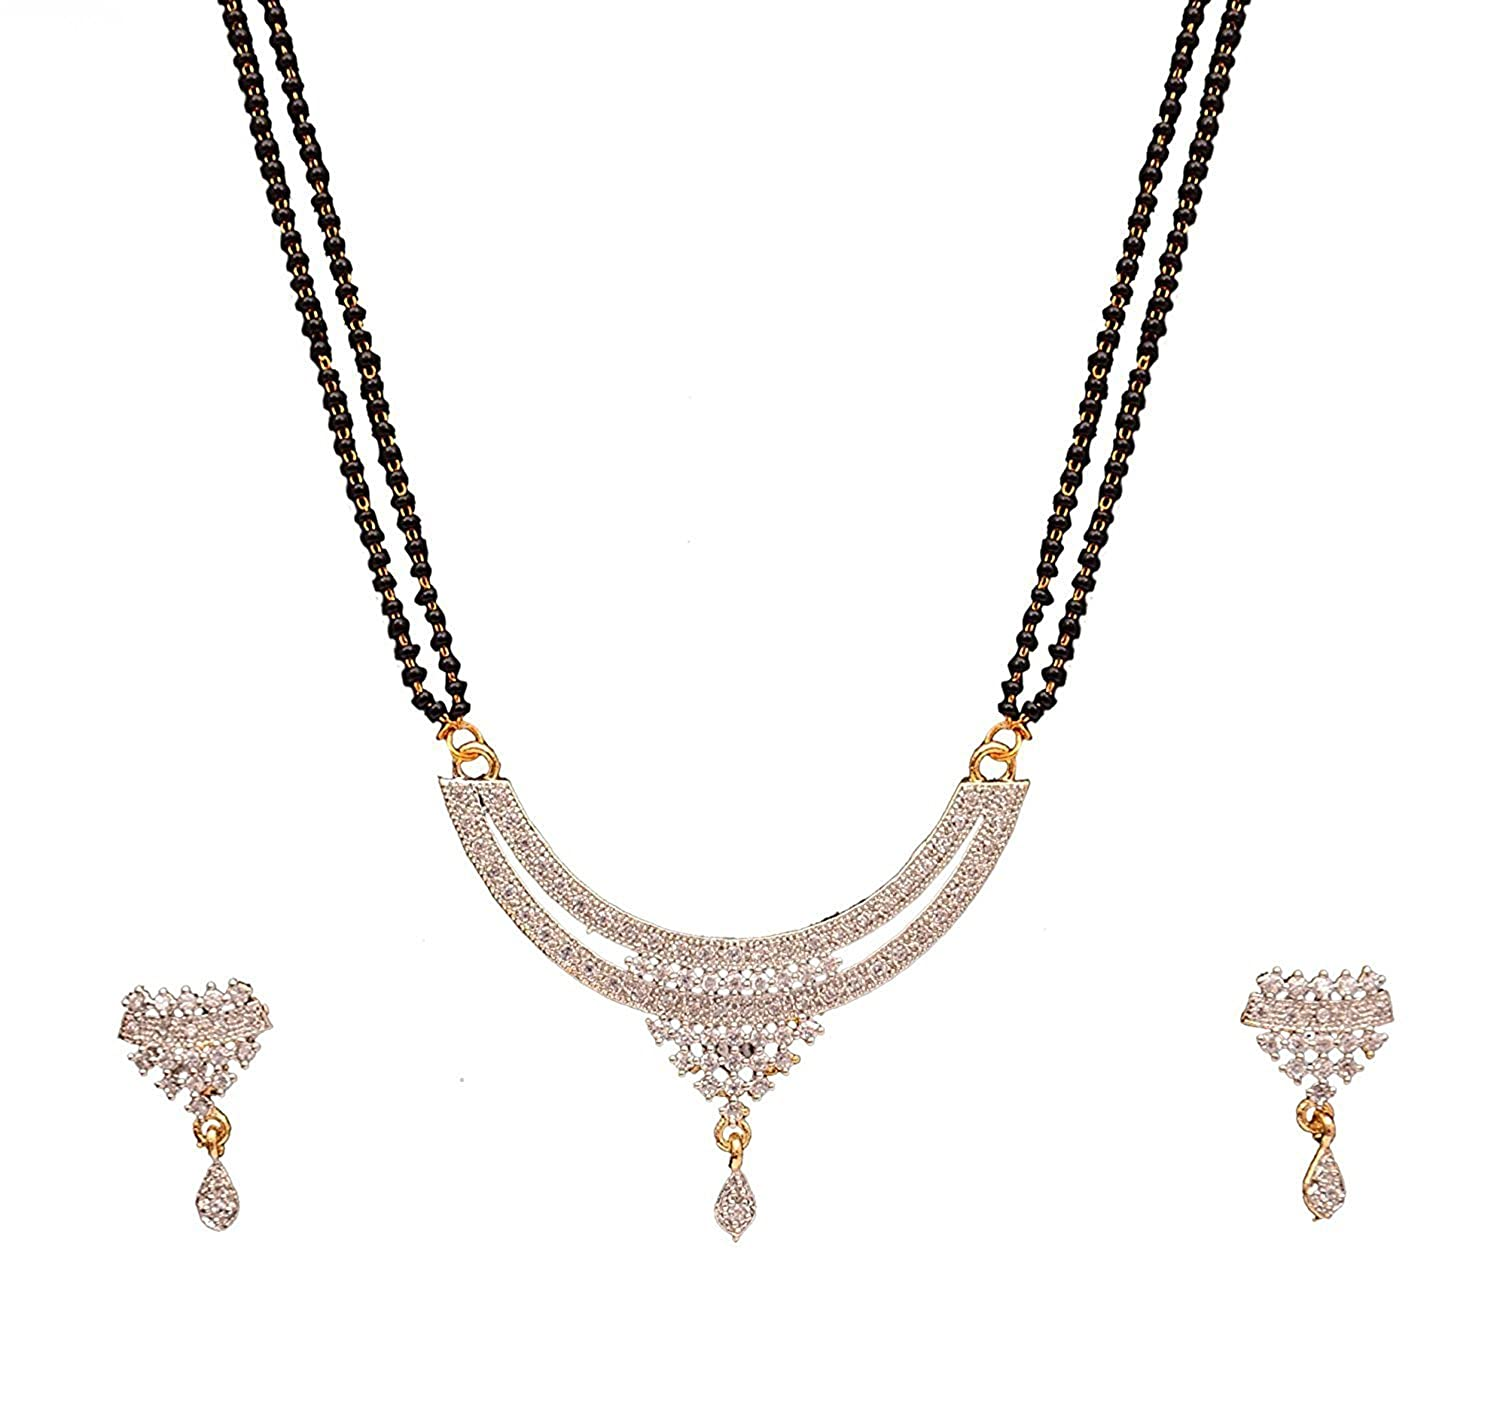 814508b772e Buy Cardinal American Diamond Latest Design mangalsutra Pendant Necklace Set  latest Design with Earring and Chain for Women Online at Low Prices in  India ...